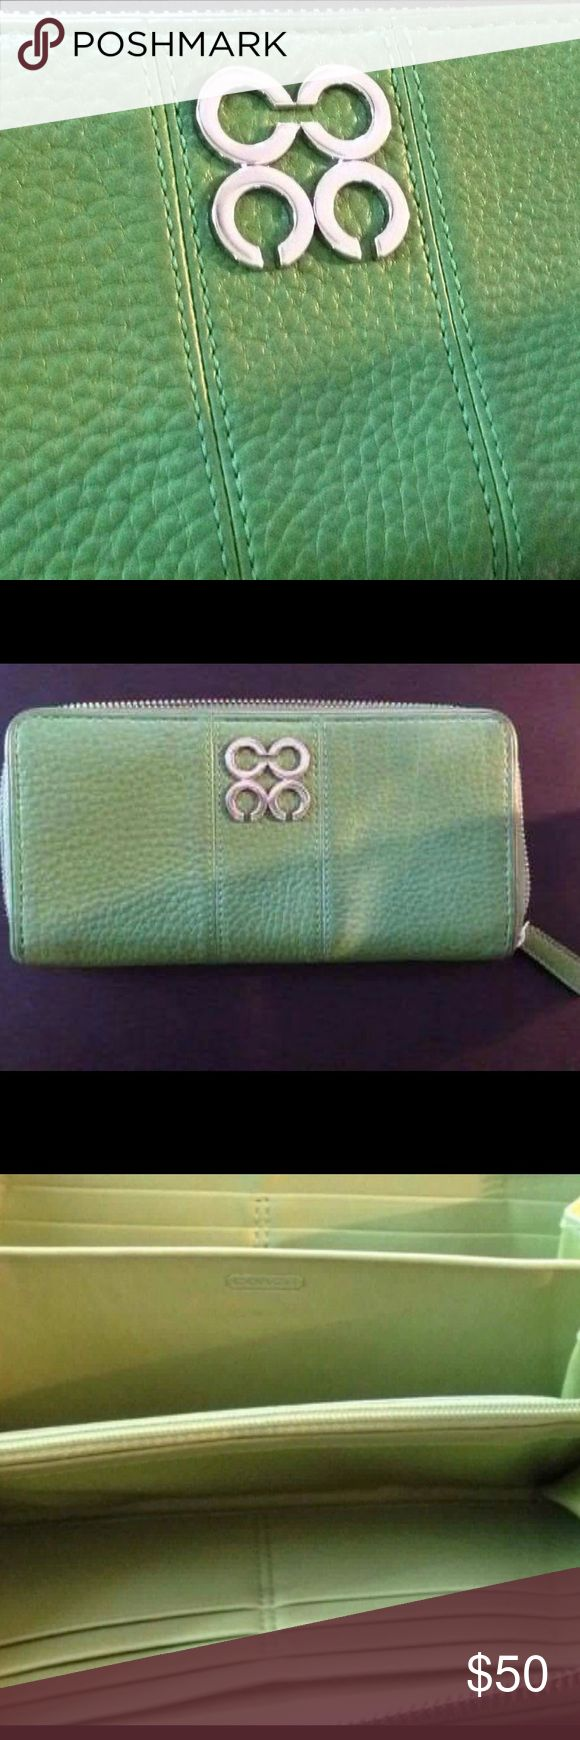 Kelly Green Pebbled leather zip up wallet. Beautiful, Kelly Green, zip up Coach Wallet. Like new. Never used. Gorgeous color and lots of room for cards. Super soft pebbled leather. Coach Bags Wallets